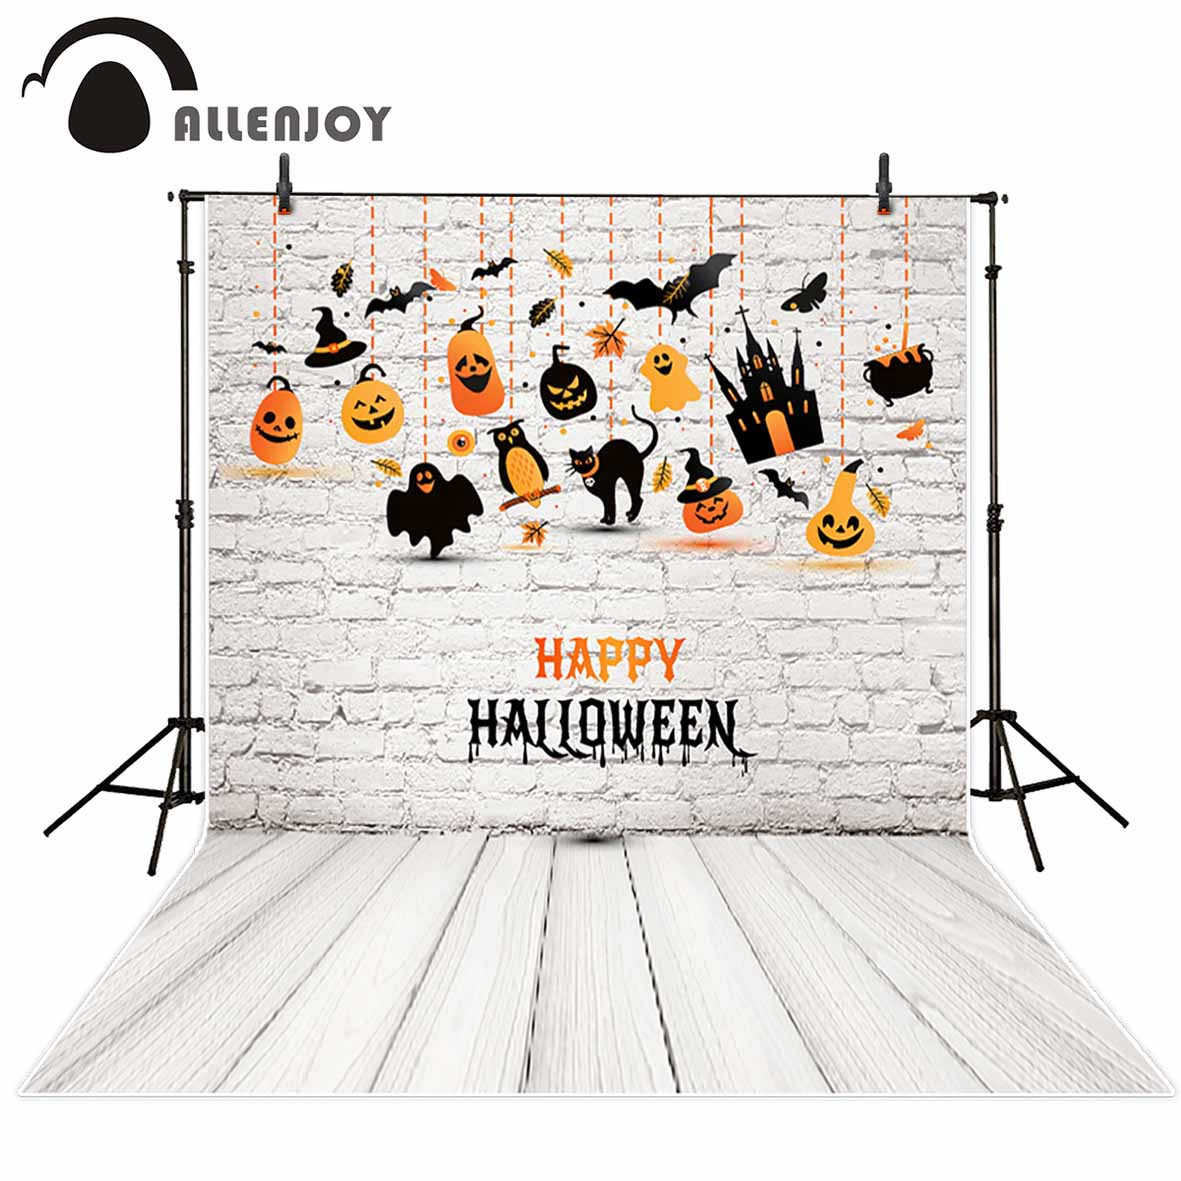 Allenjoy photography backdrop White Brick Wall Cartoon Child Halloween background original design for studio fotografia props allenjoy background for photo studio full moon spider black cat pumpkin halloween backdrop newborn original design fantasy props